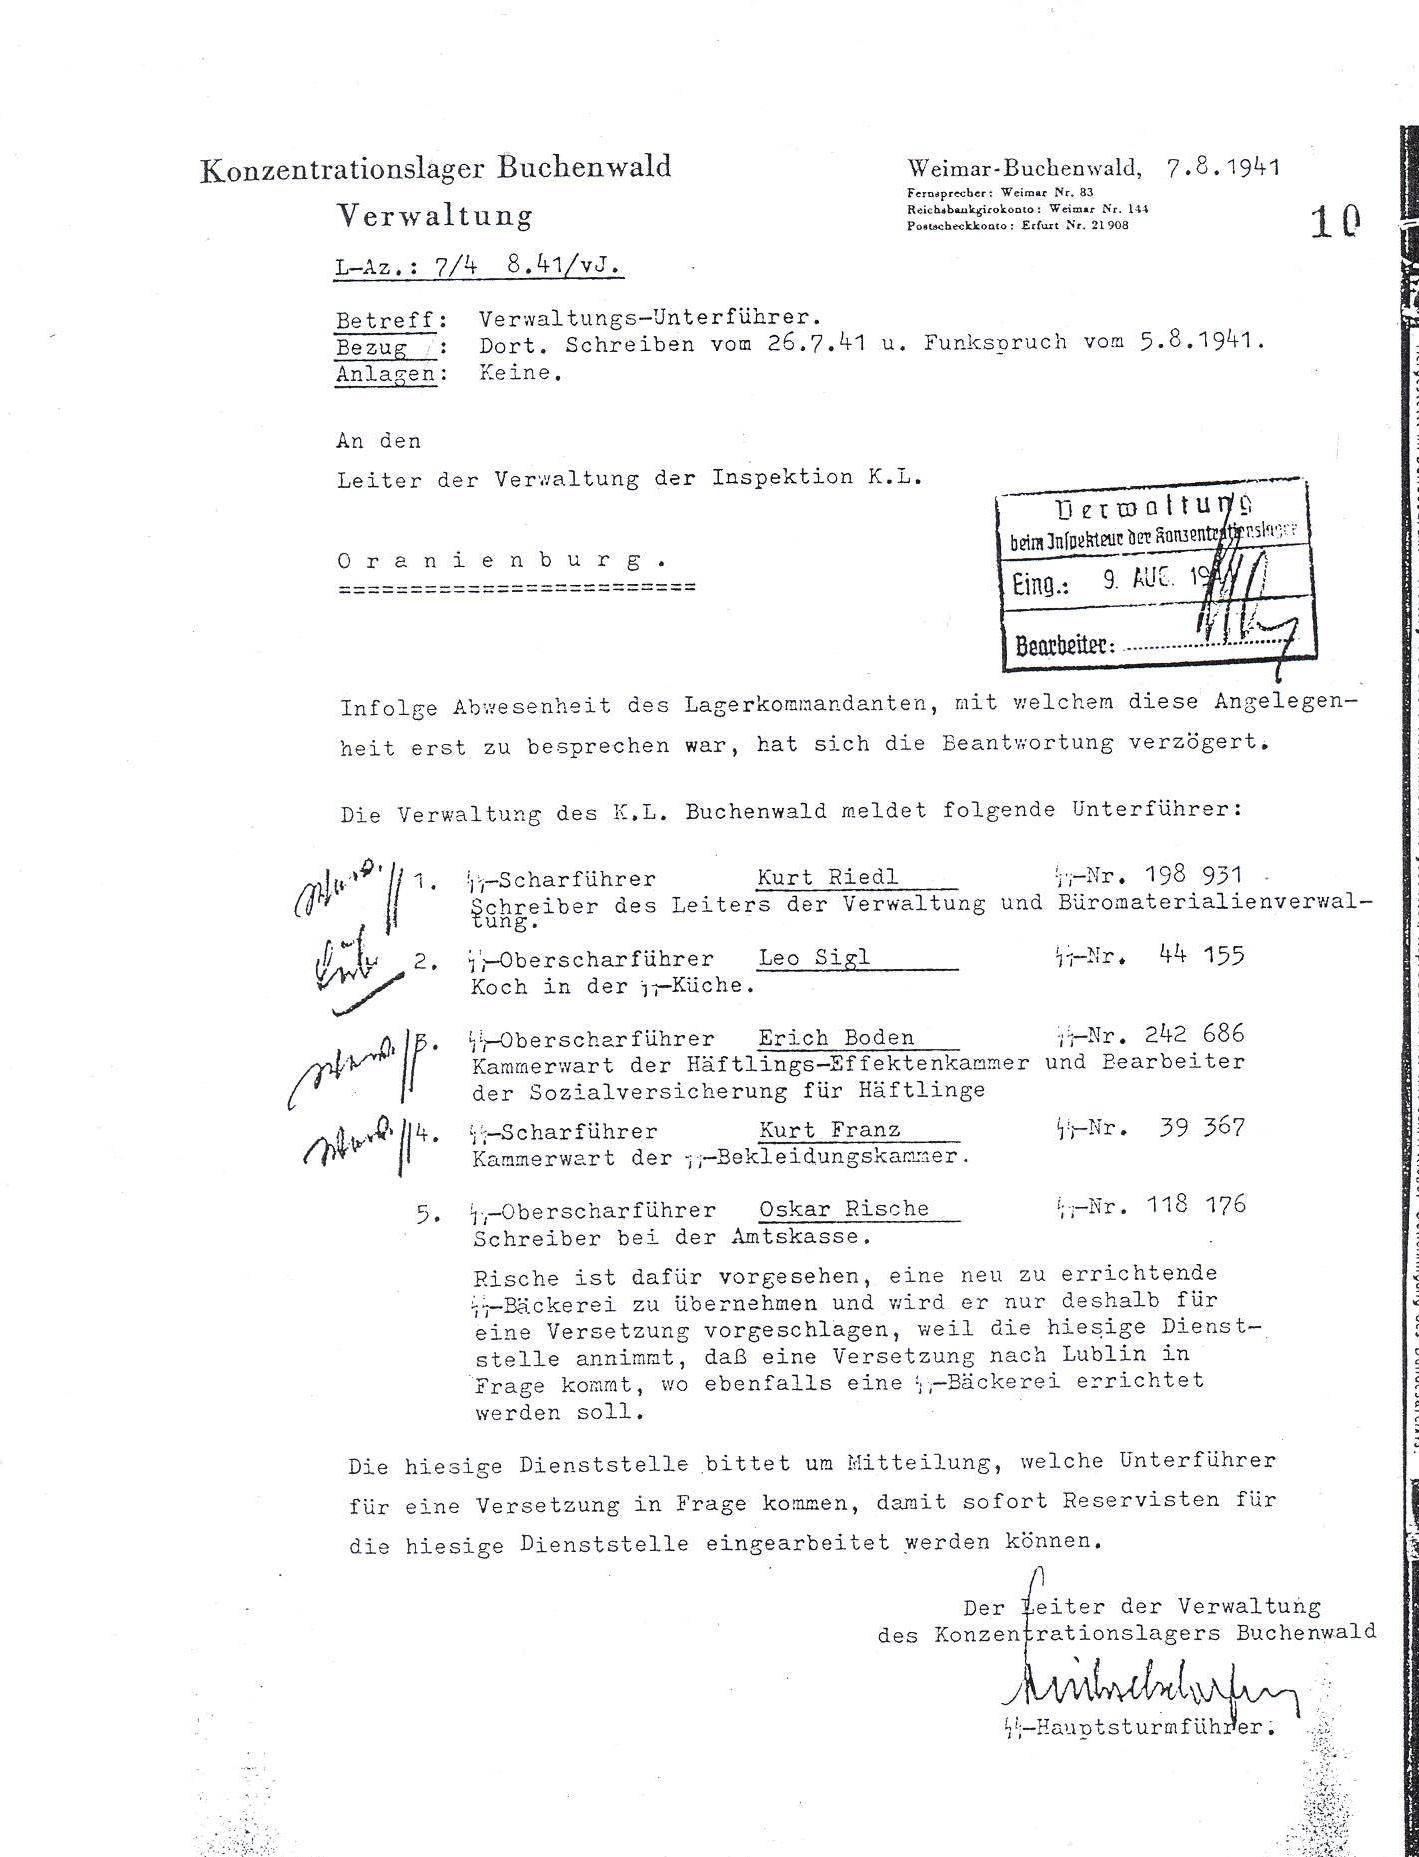 research paper on survival in auschwitz Primo levi's heartbreaking, heroic answers to the most common questions he was asked about survival in auschwitz prisoners succeeded, for example, in blackmailing or corrupting the ss, thus curbing their indiscriminate power in sabotaging the work of the german war industries in organizing.